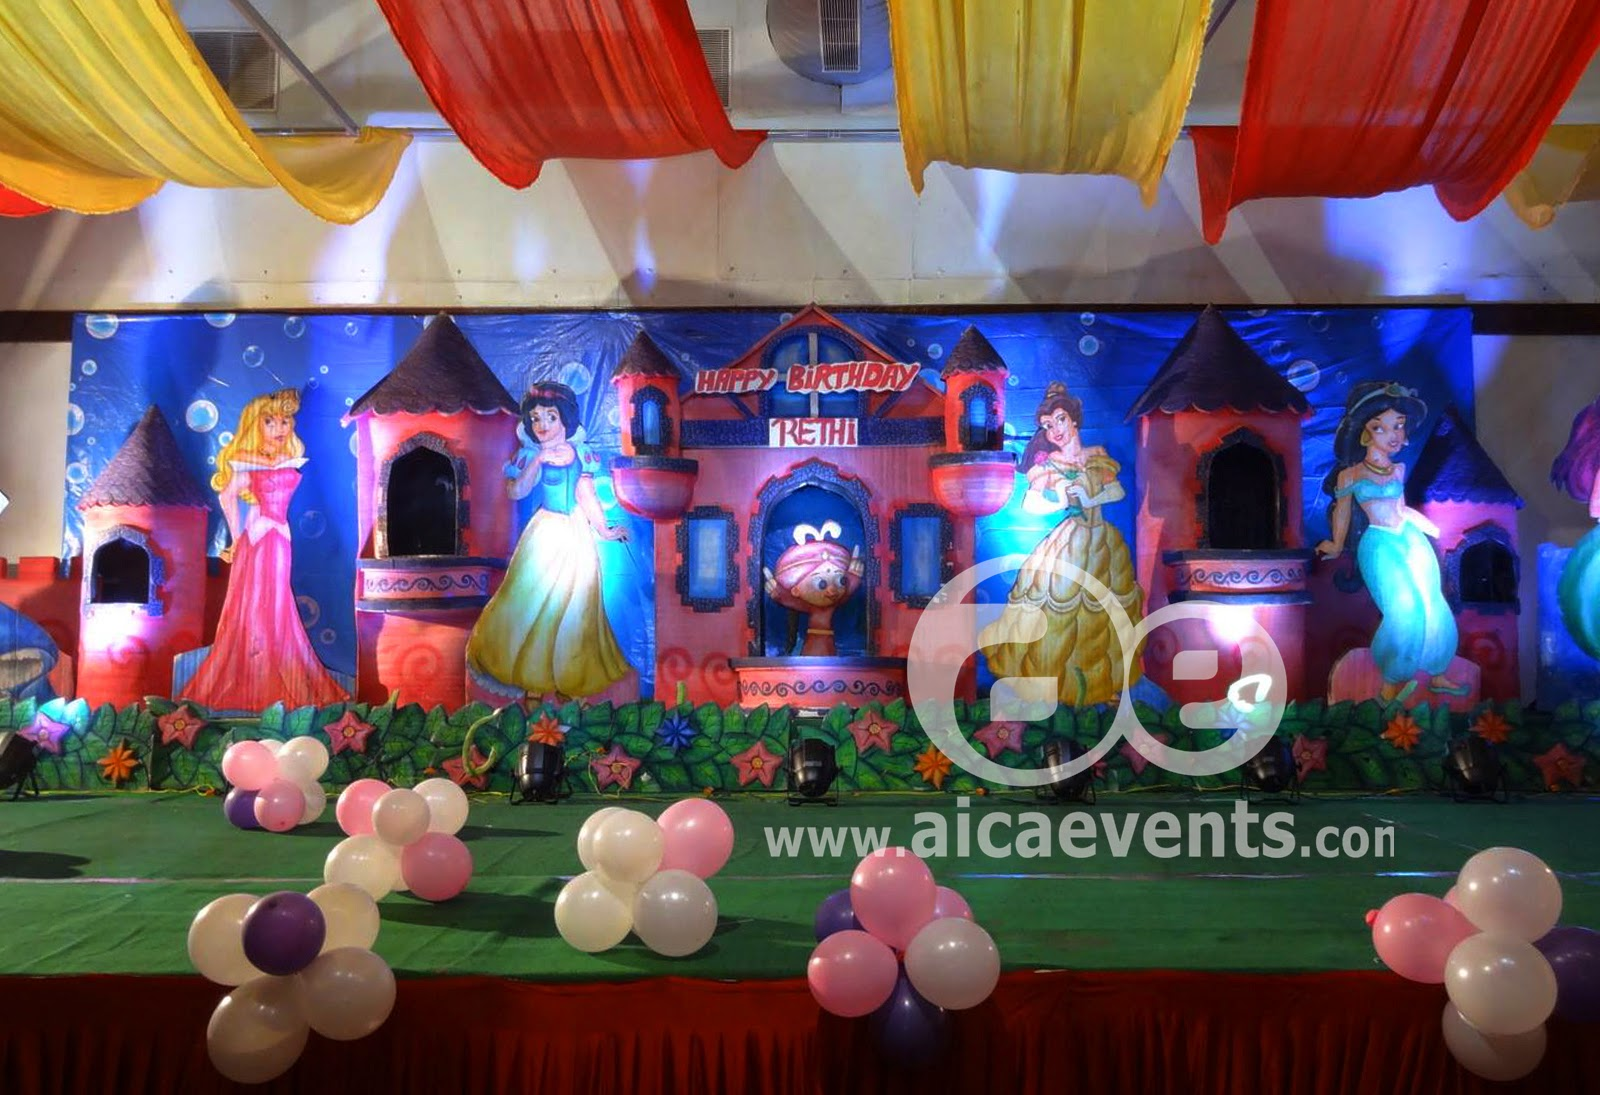 Here are some of images of the Barbie Theme Decorations did by AICA events at Tirupathi in the month of September 2014 & Aicaevents India: Barbie Theme Decorations for girls Birthday Parties